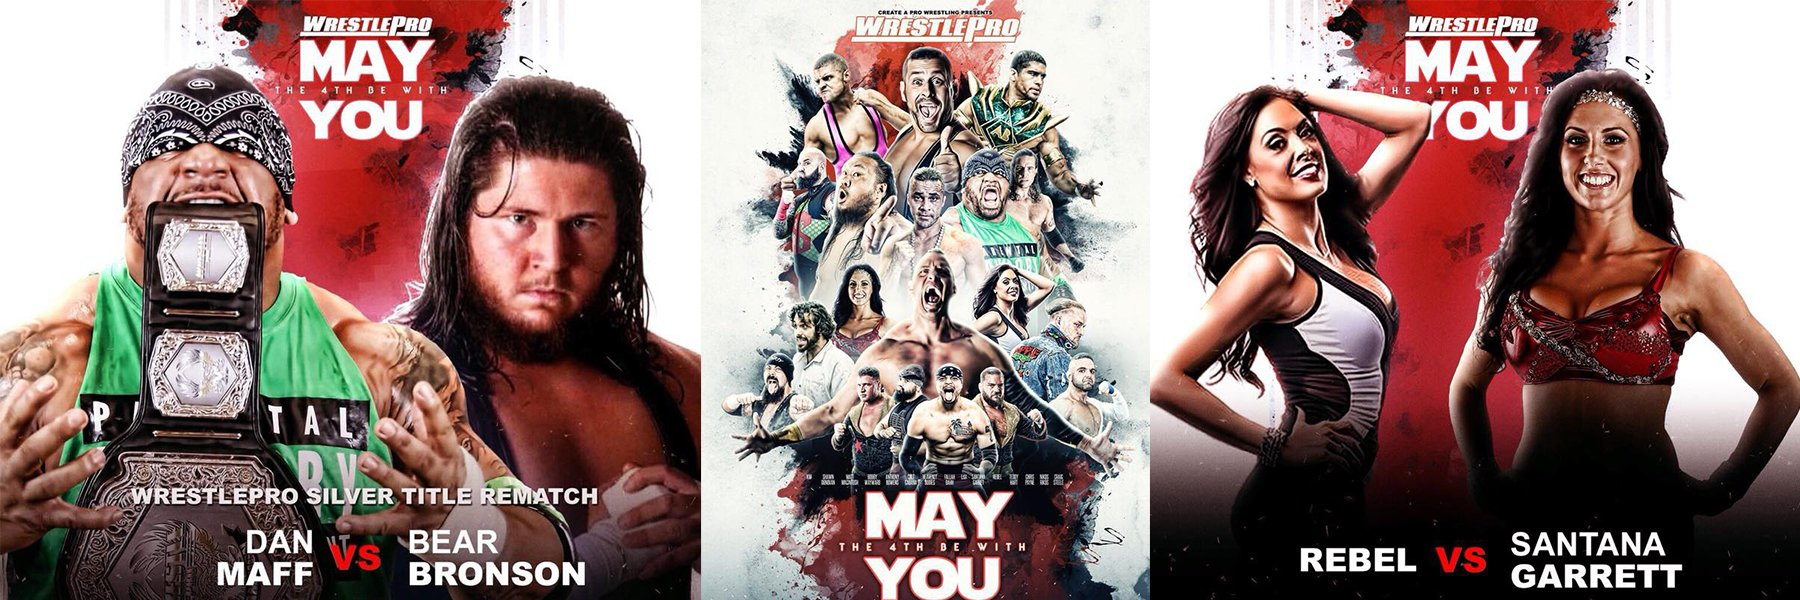 New WrestlePro Just Added! Santana Garrett vs Rebel, Dan Maff vs Bronson